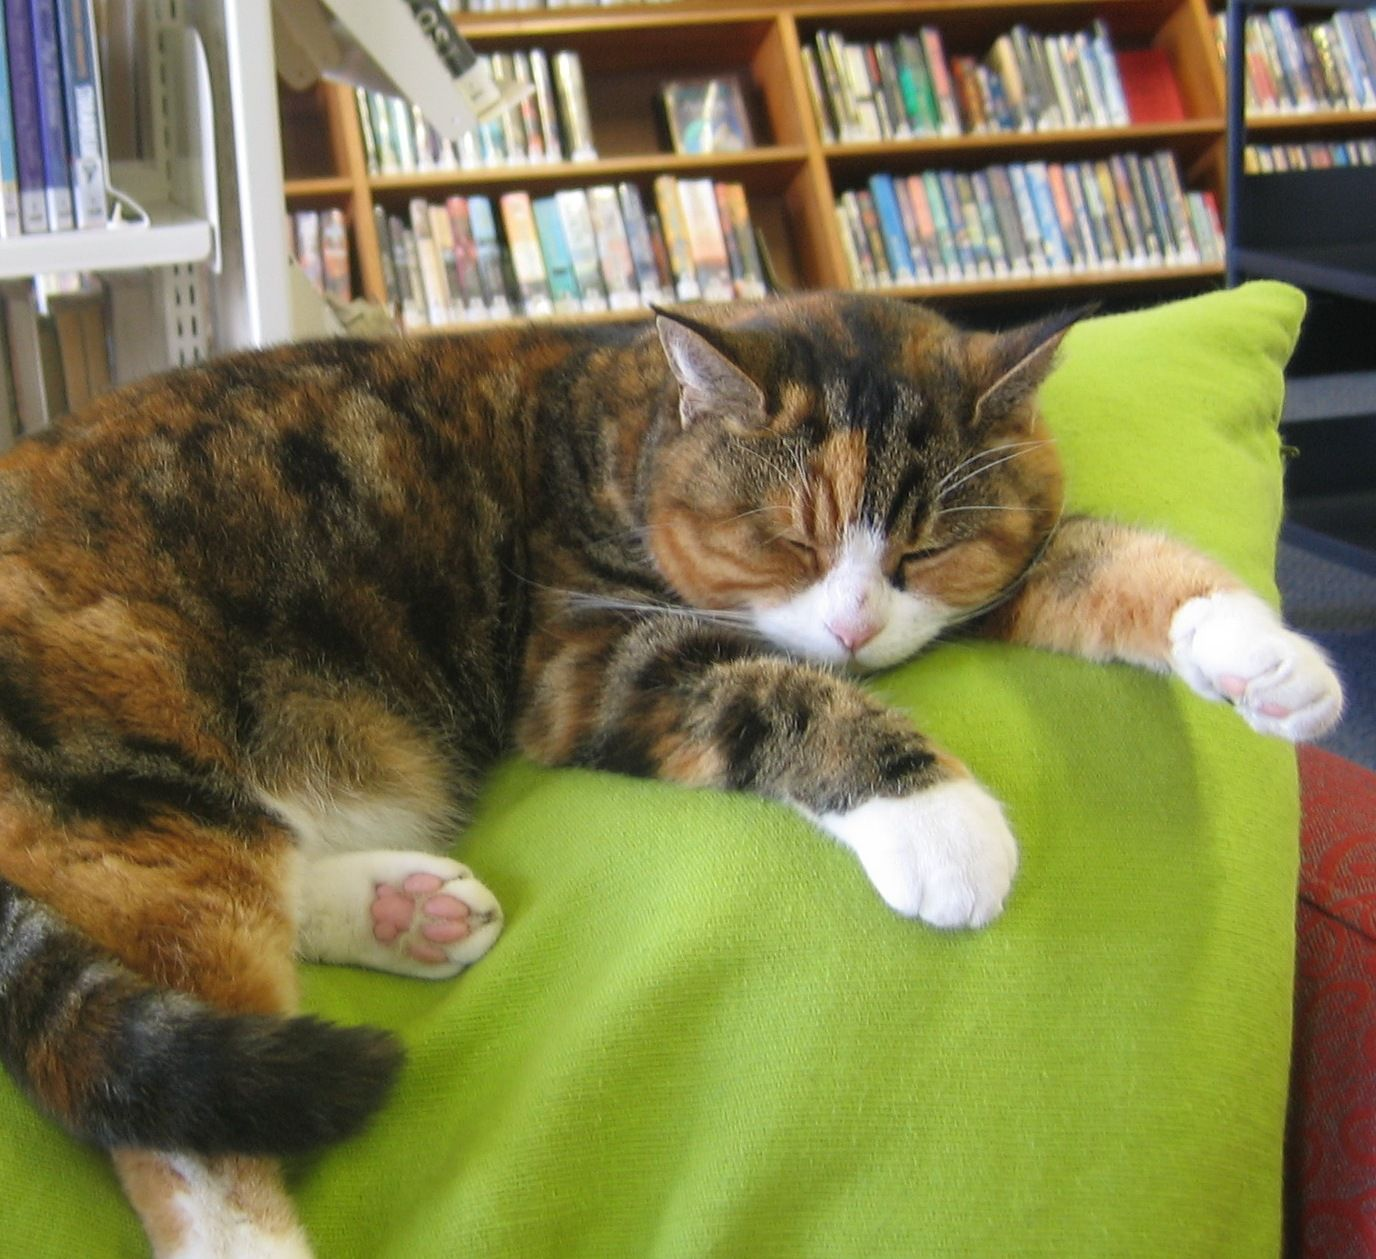 """This is Xena, the library cat. """"You can usually find me lounging around in the Large Print area of St Heliers Library in Auckland [New Zealand]. My interests are eating, sleeping and extreme road crossing."""" Click through for Xena's Twitter feed and a link to her Facebook page!"""